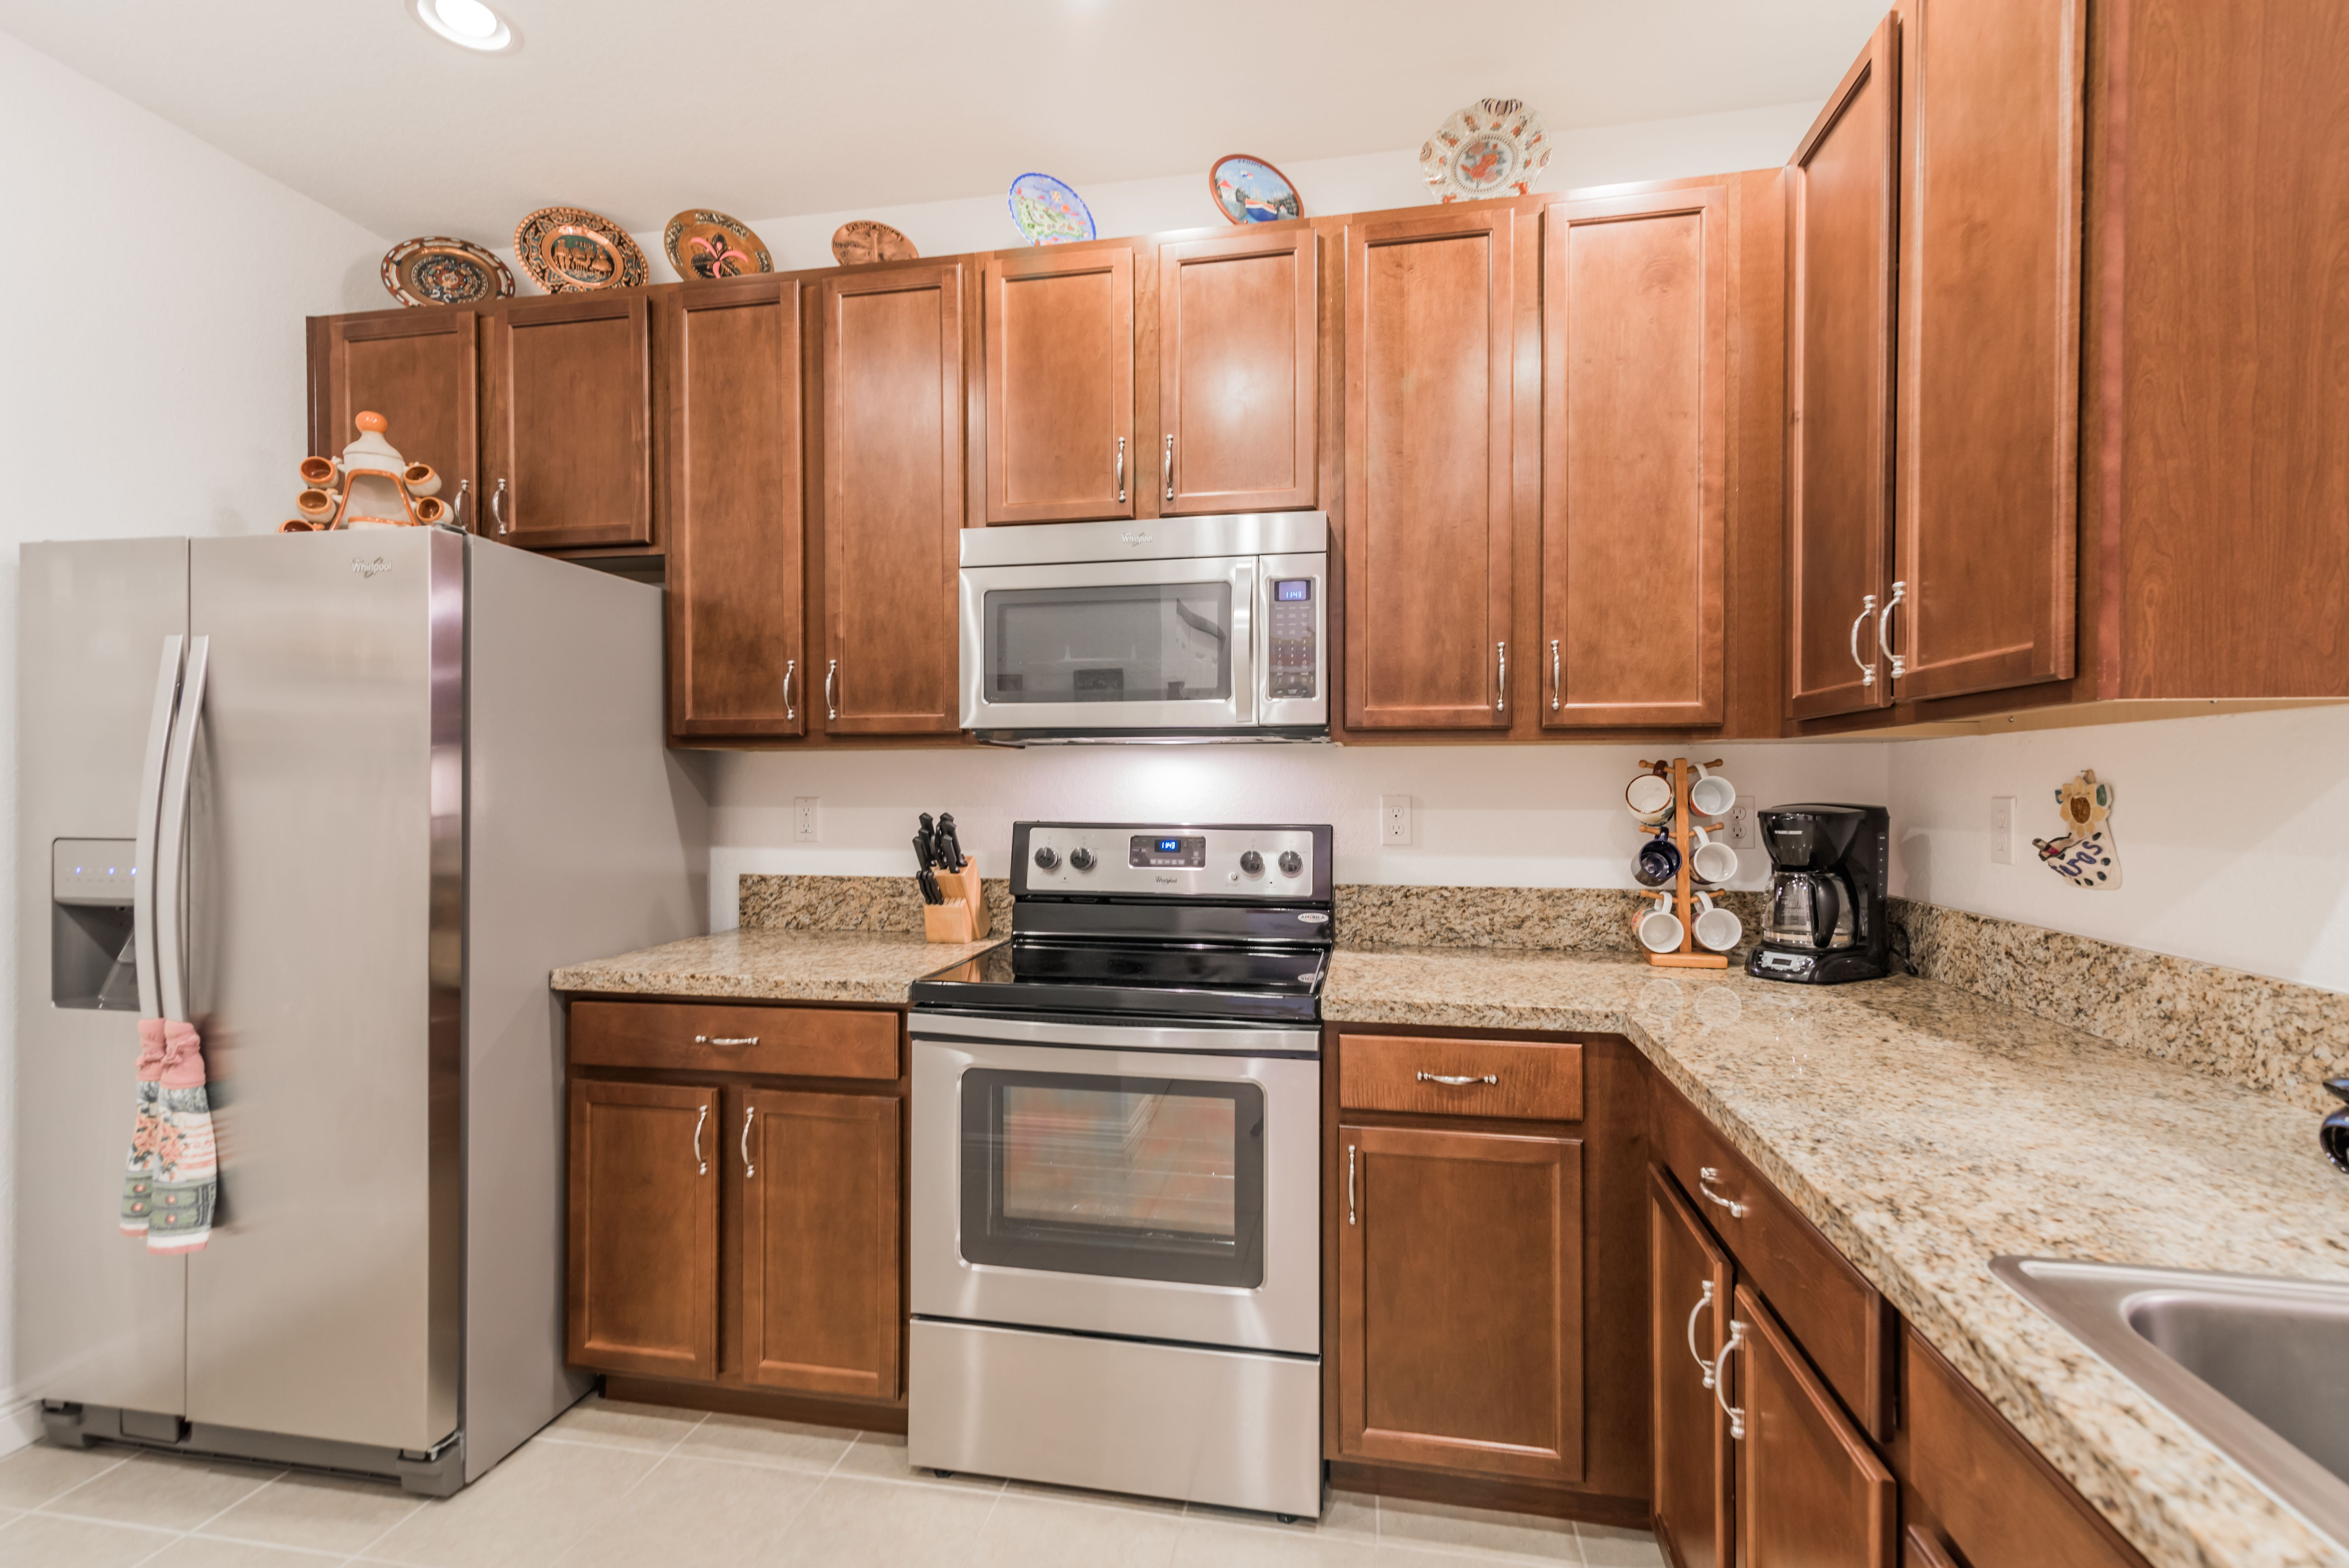 14671 Sw 9 Street Pembroke Pines Fl Oscar Rodriguez With Ewm Realty International 305 342 5257 Asking 265 000 Fe With Images Small Kitchen Kitchen Recessed Lighting